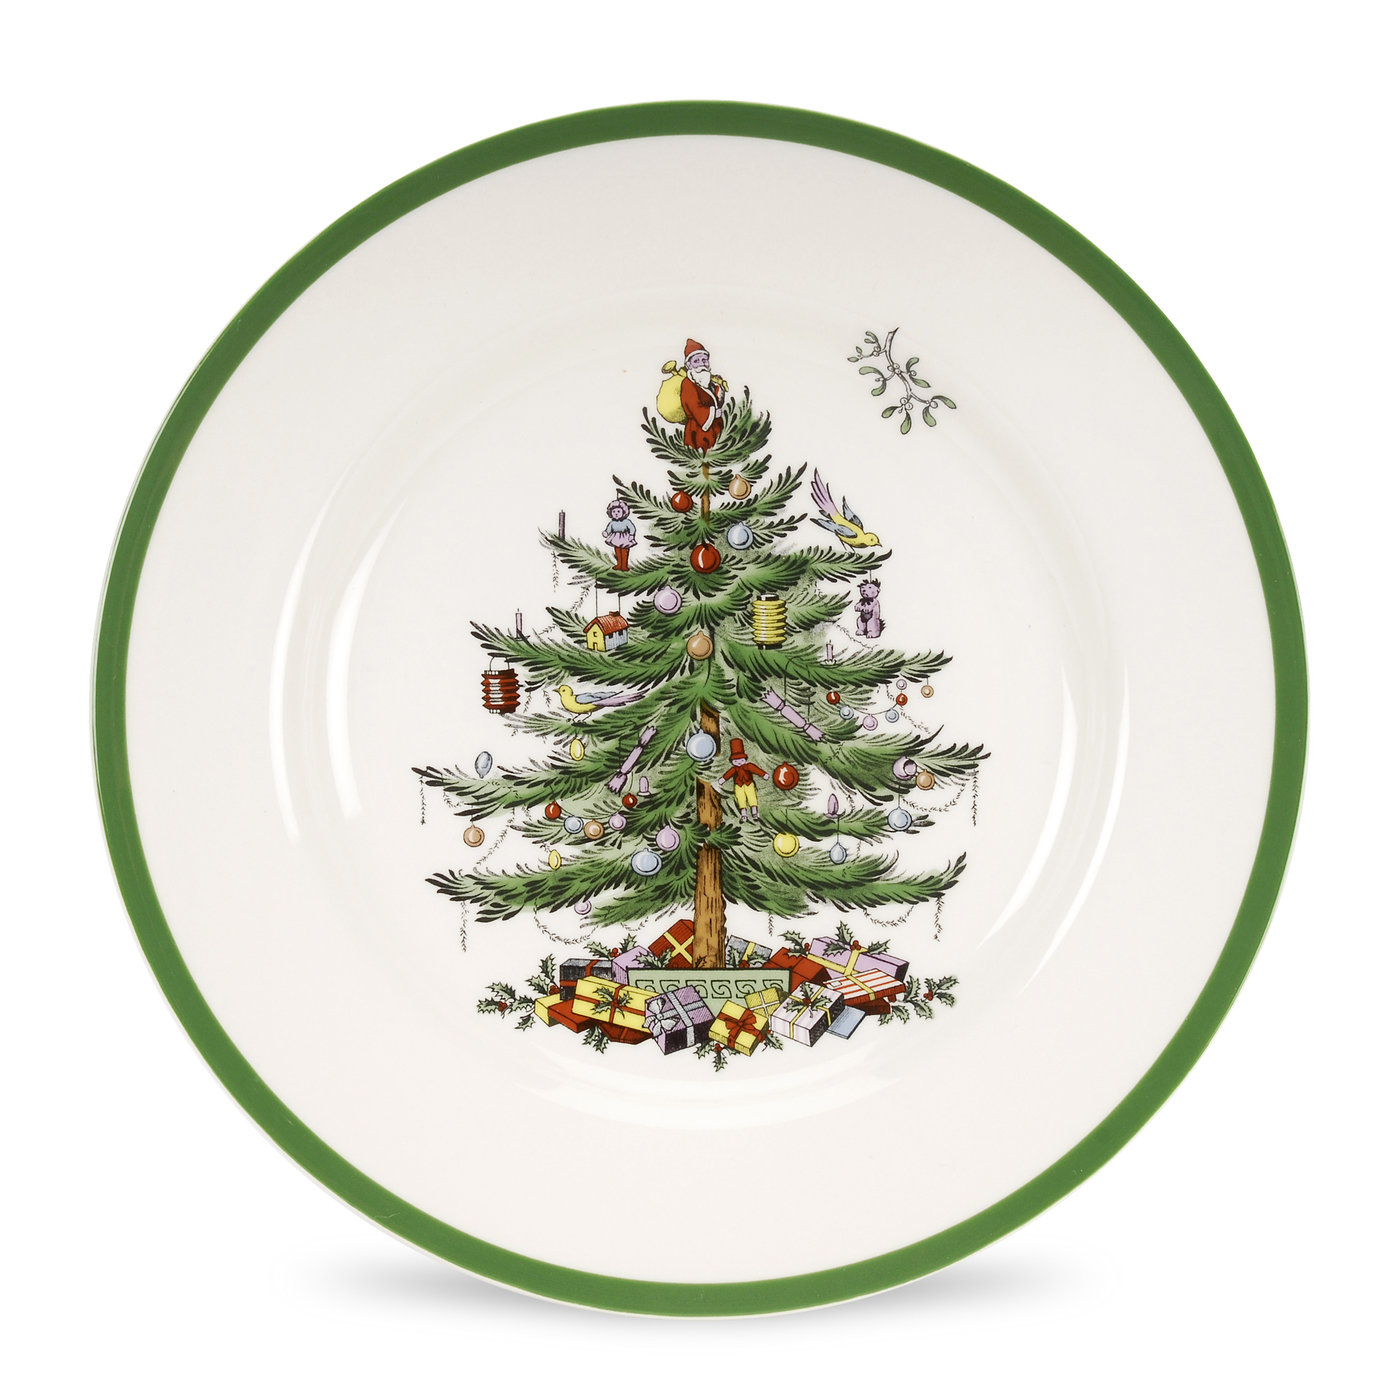 Spode Christmas Tree  Set of 12 Dinner Plates image number 0